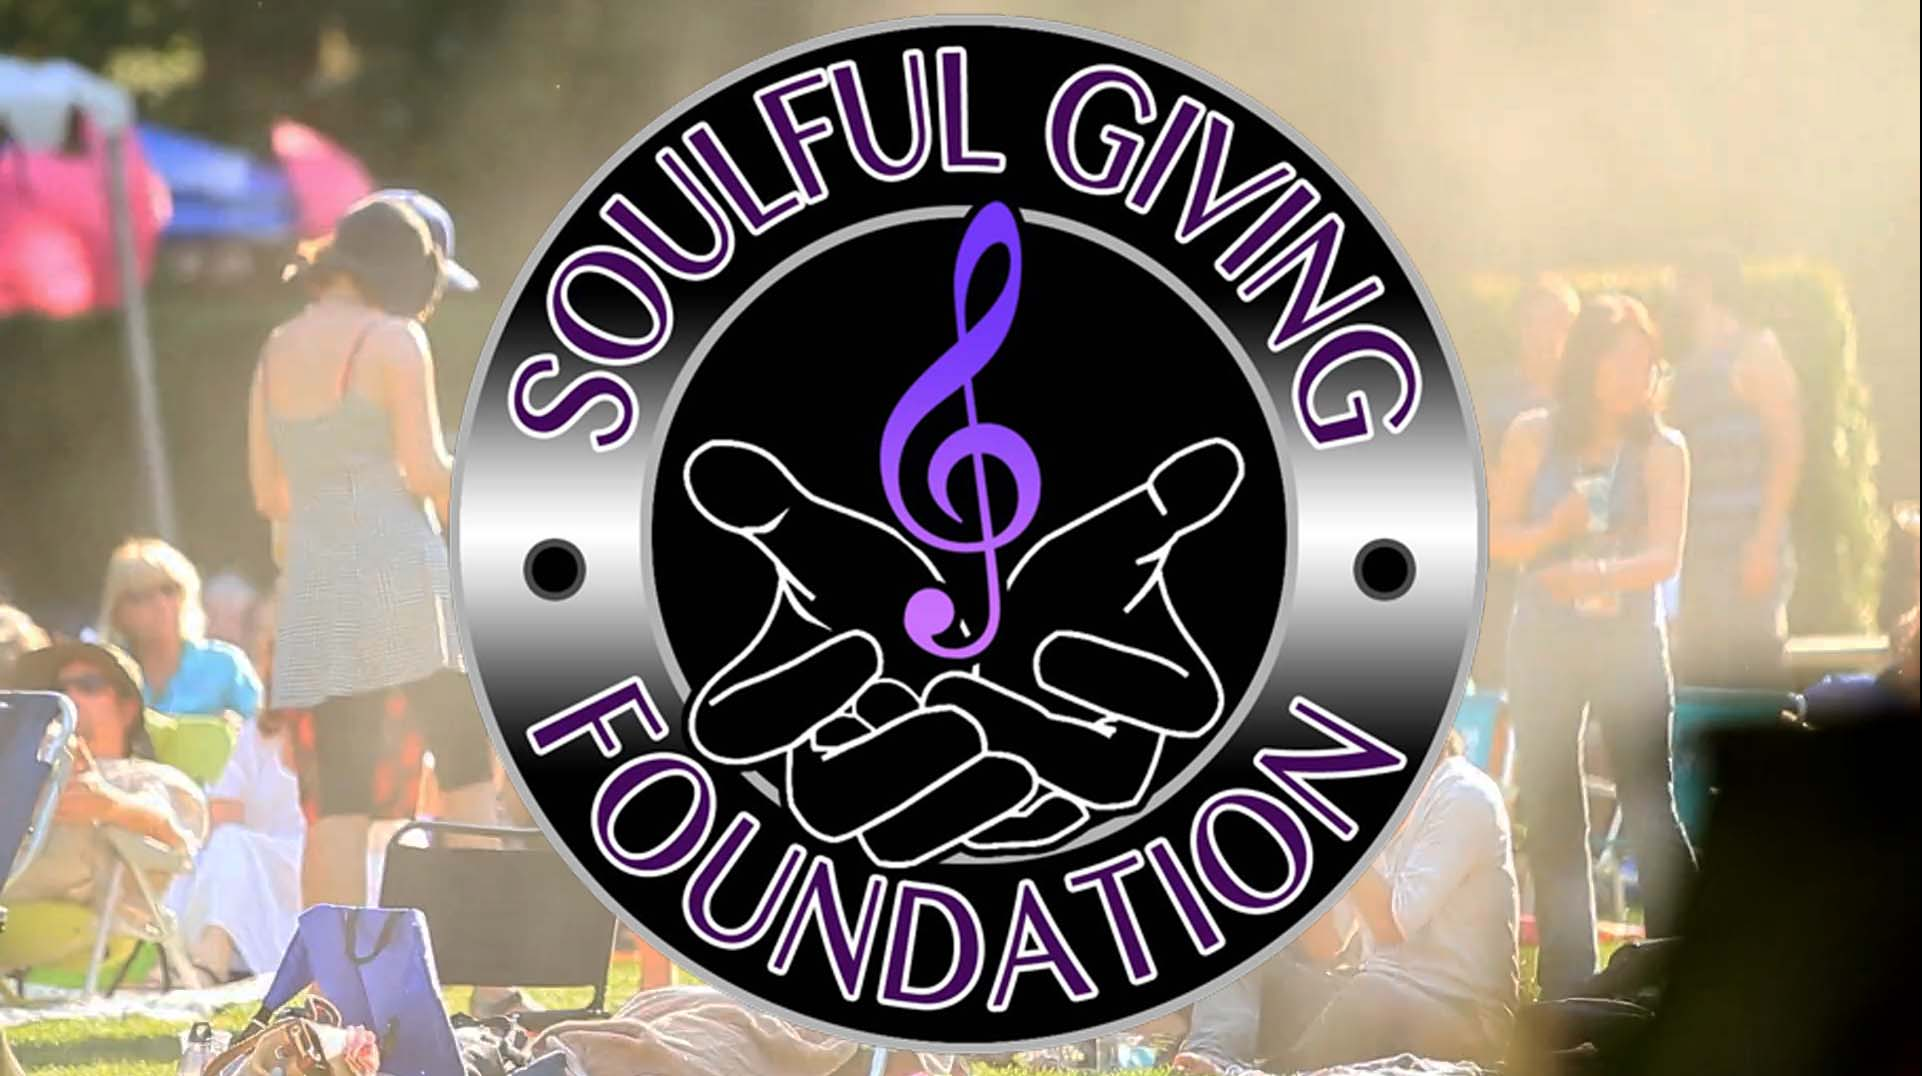 Soulful Giving